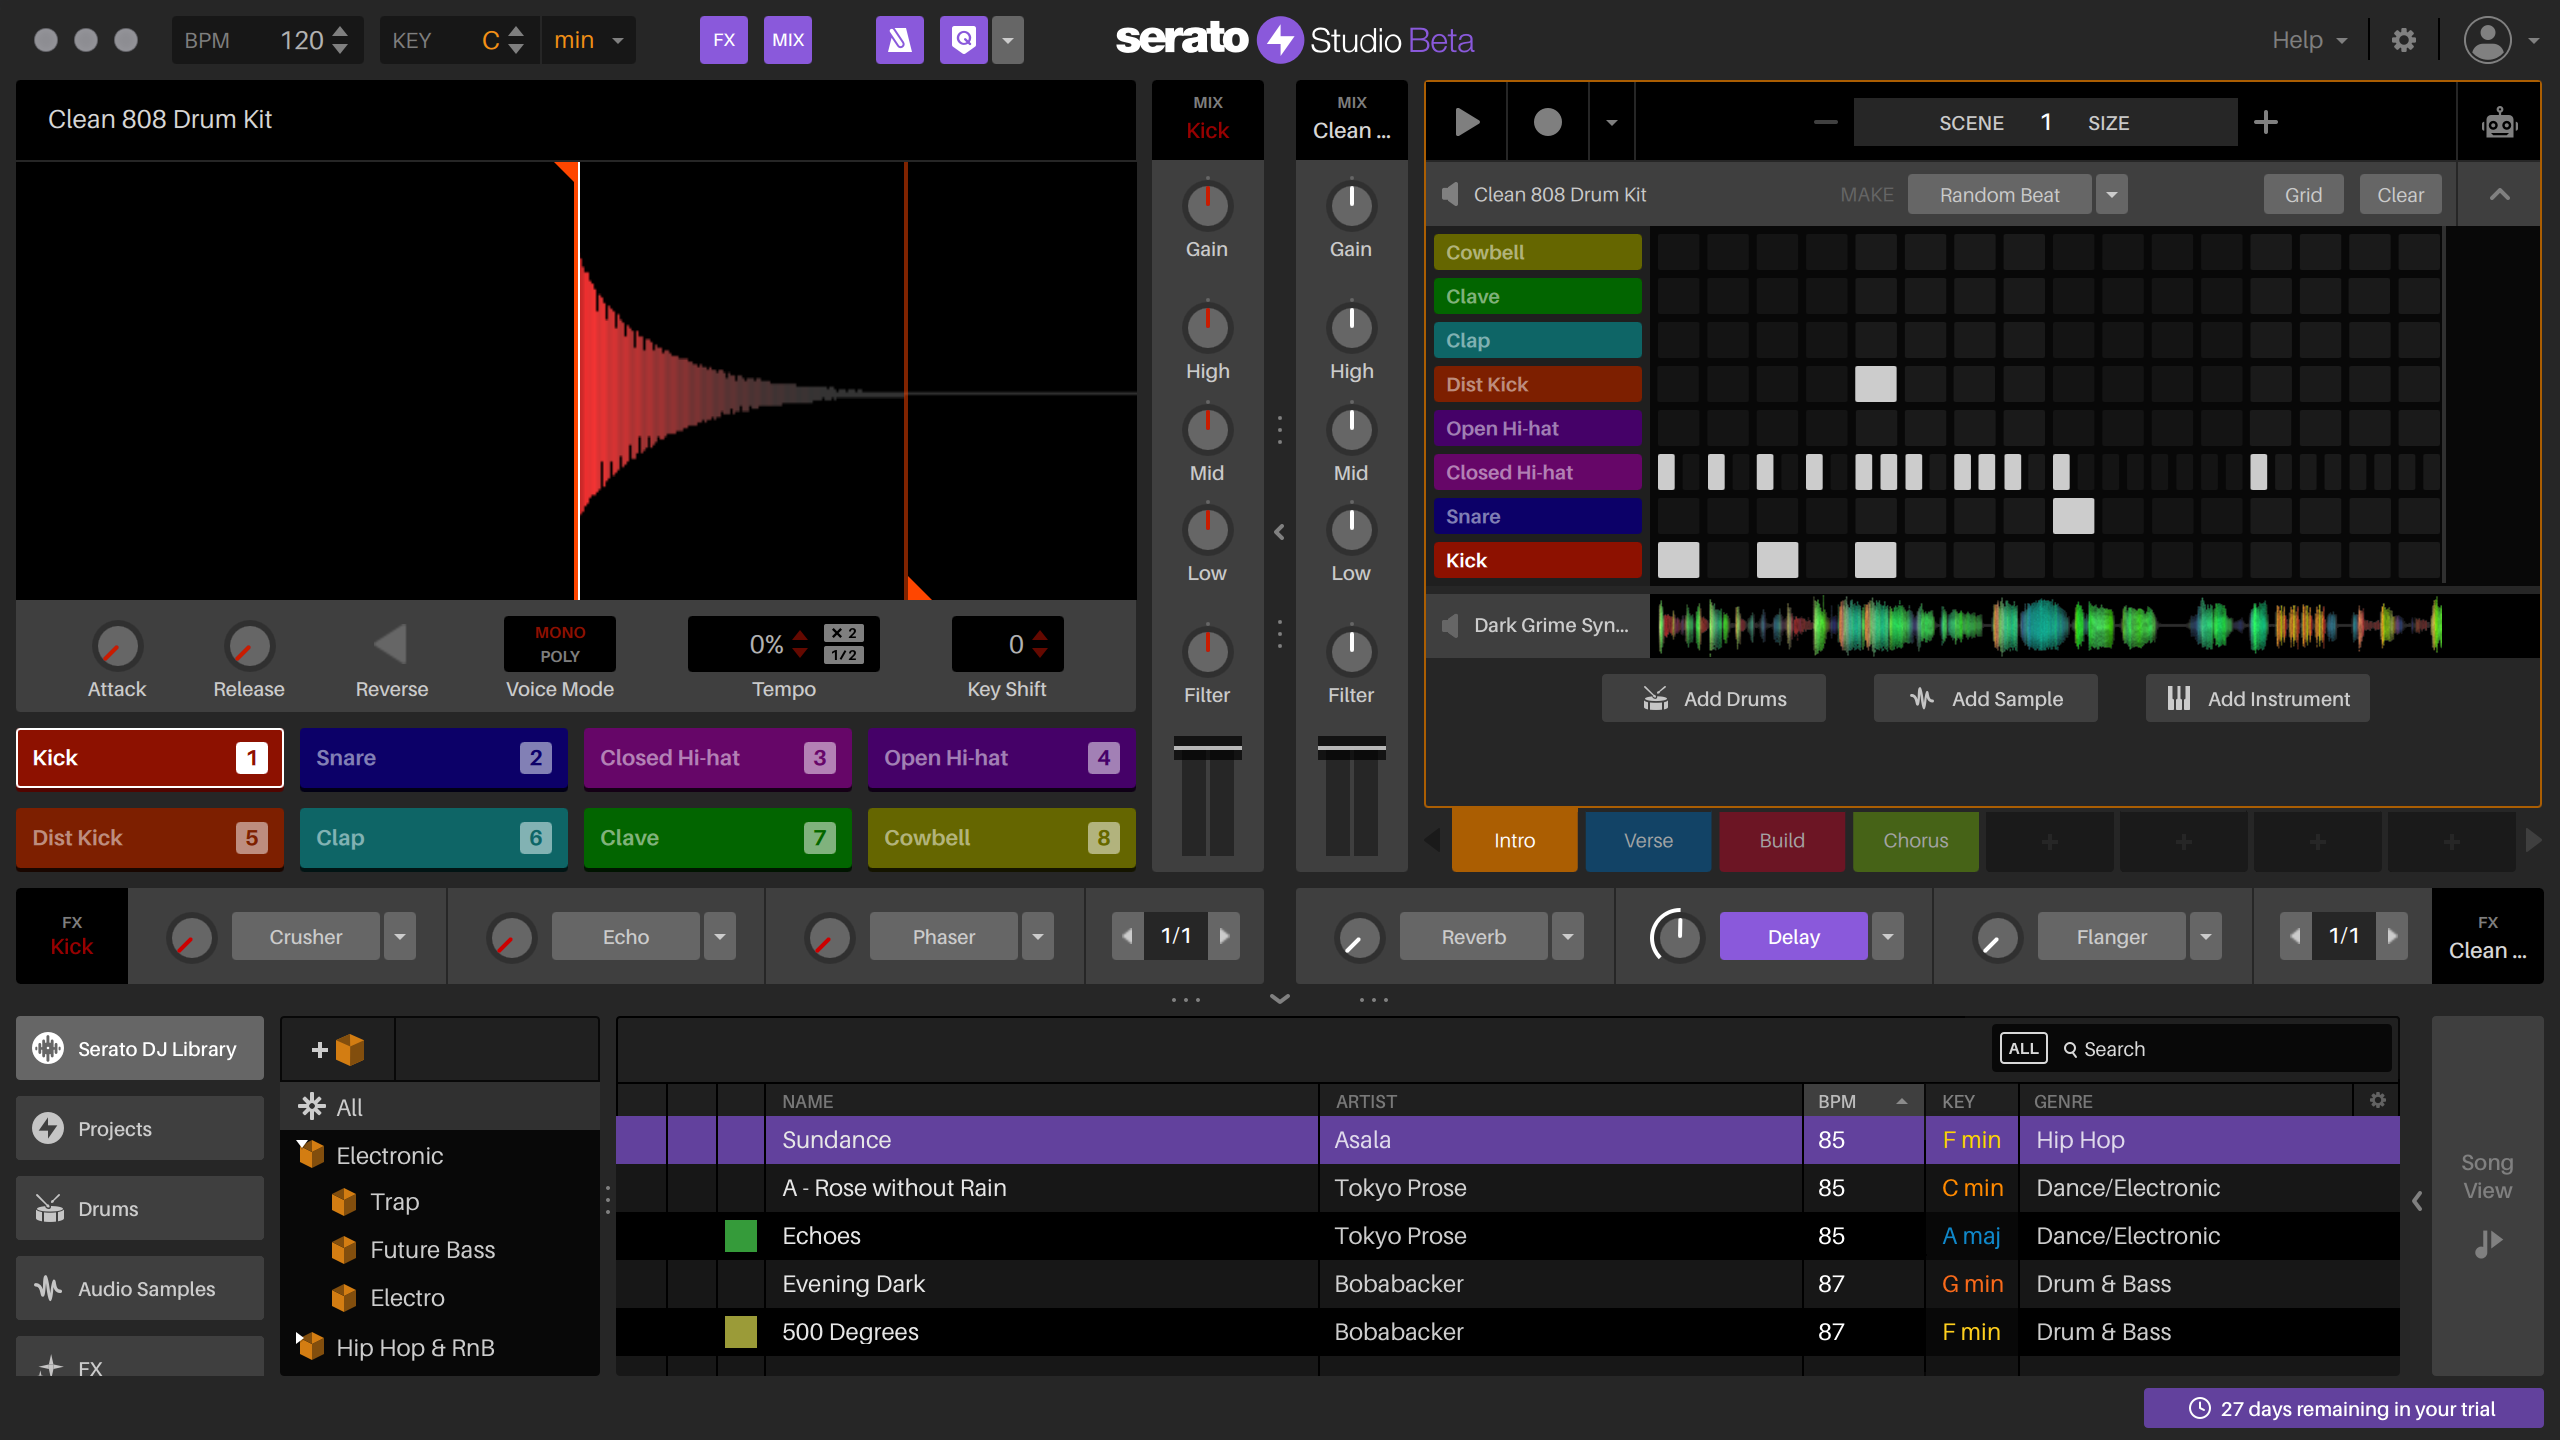 Serato Launches First Beta of New Beatmaking Software